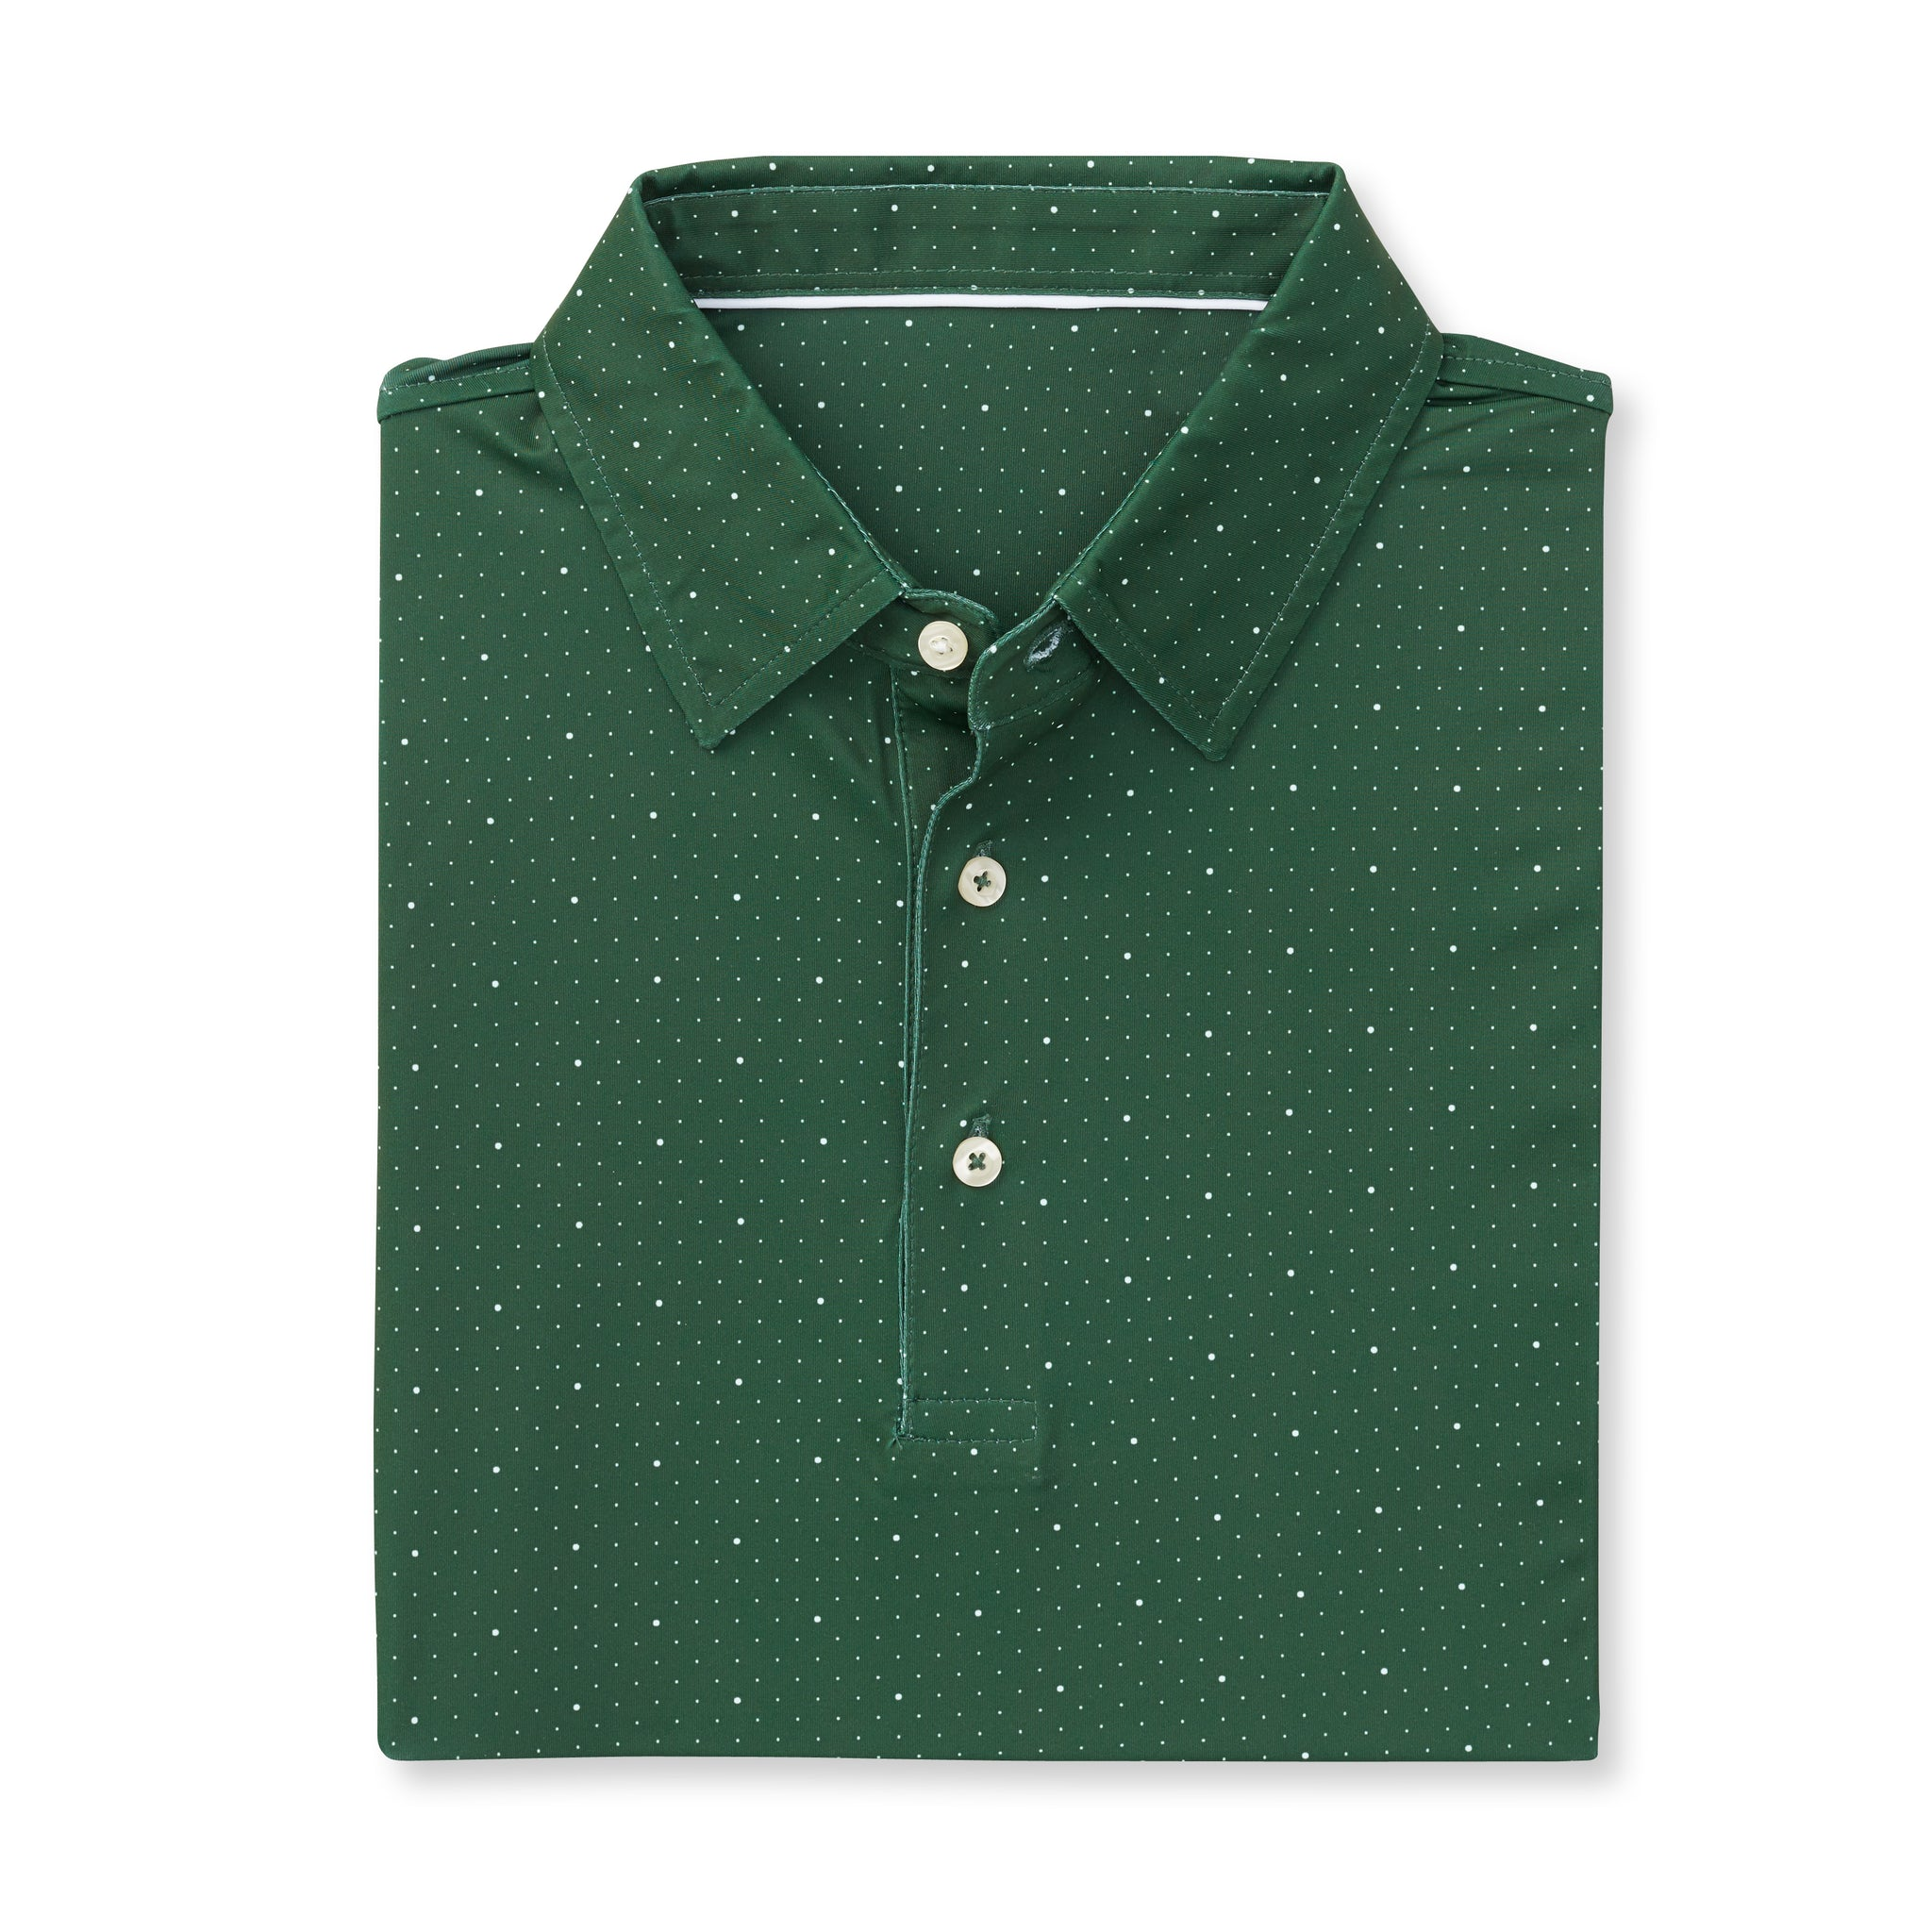 ECOTEC Short Sleeve Dual Dot Polo - Pine/White IS76803